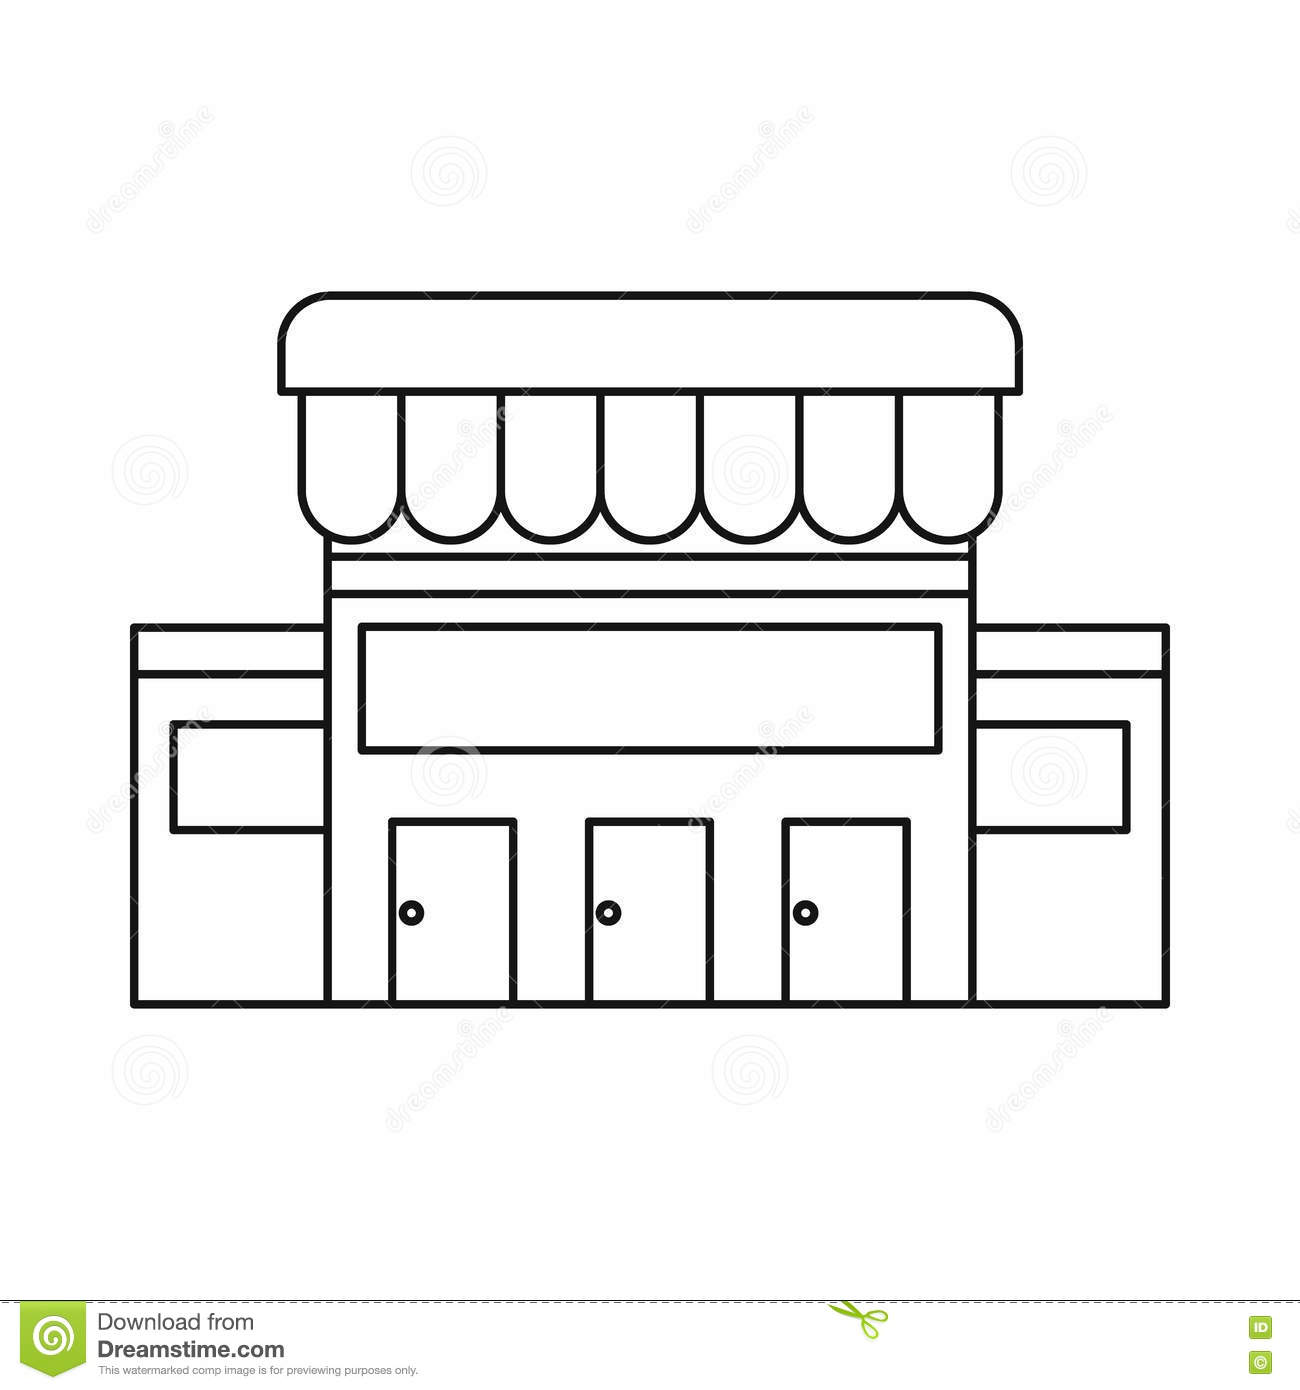 supermarket building clipart black and white 10 clipart